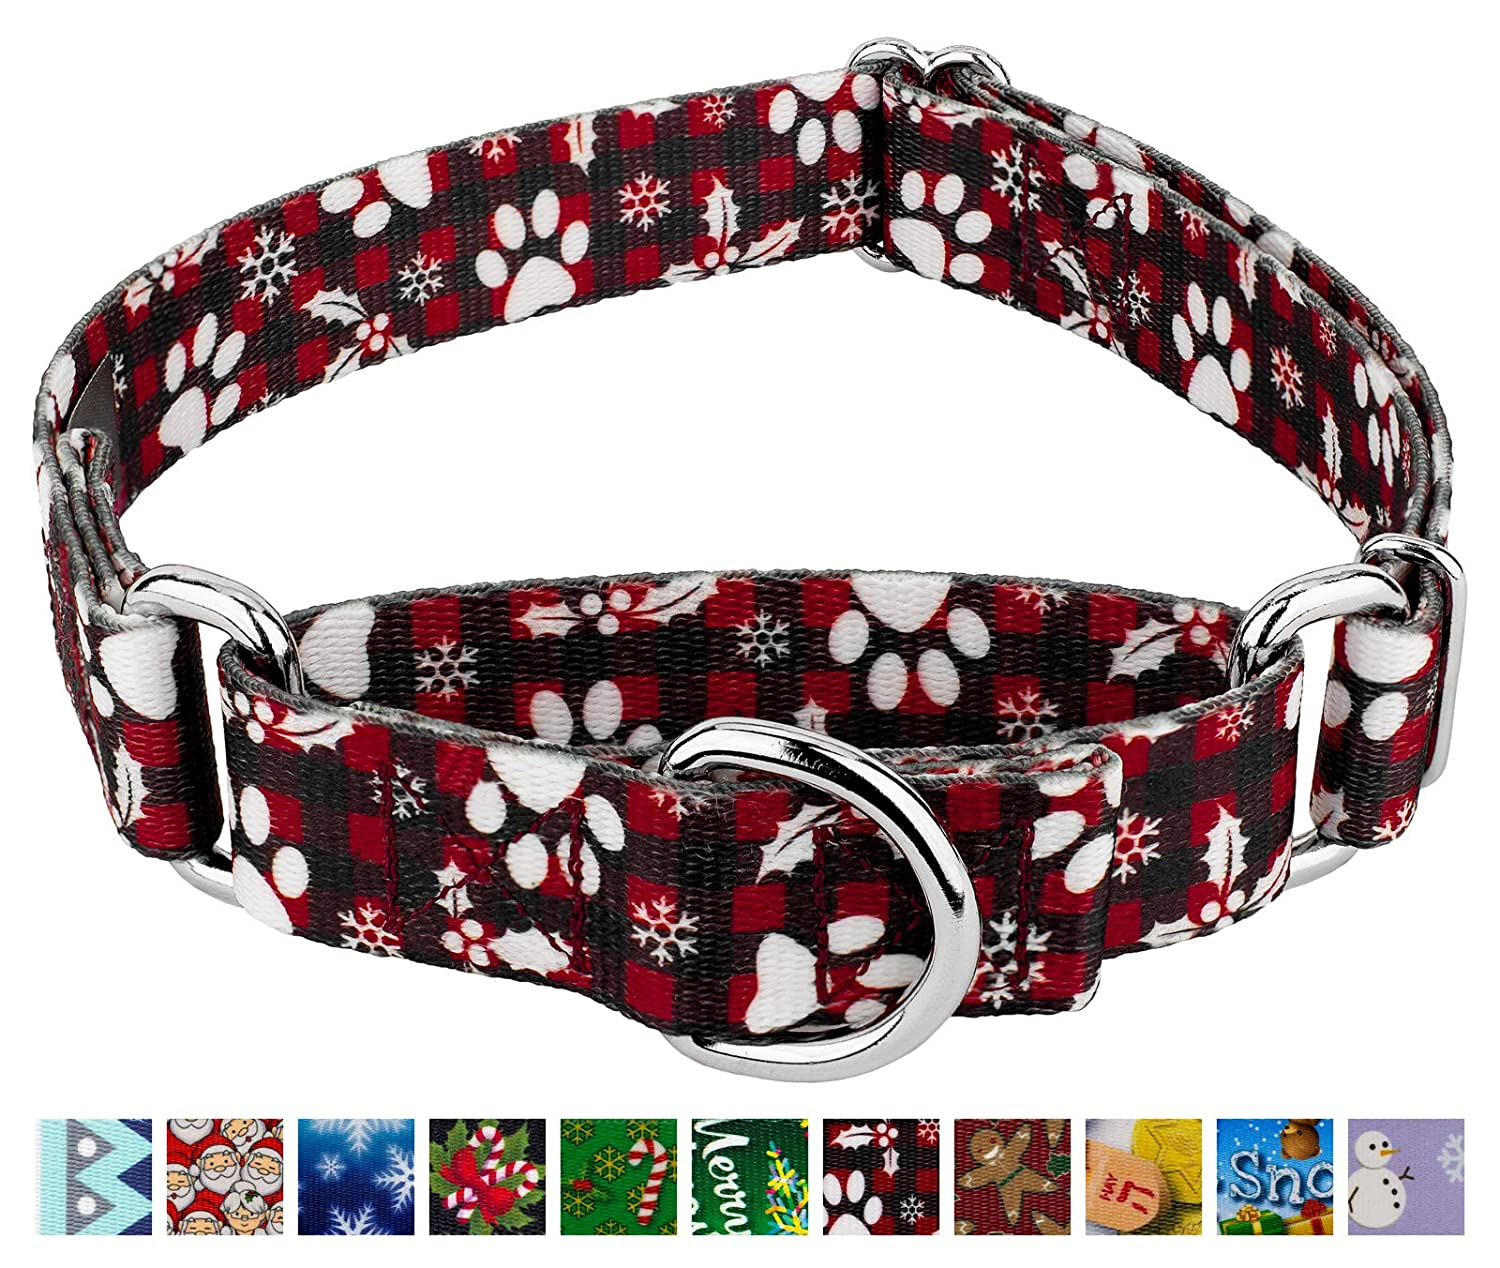 Country Brook Petz Martingale Dog Collar Christmas Collection with 15 Festive Designs